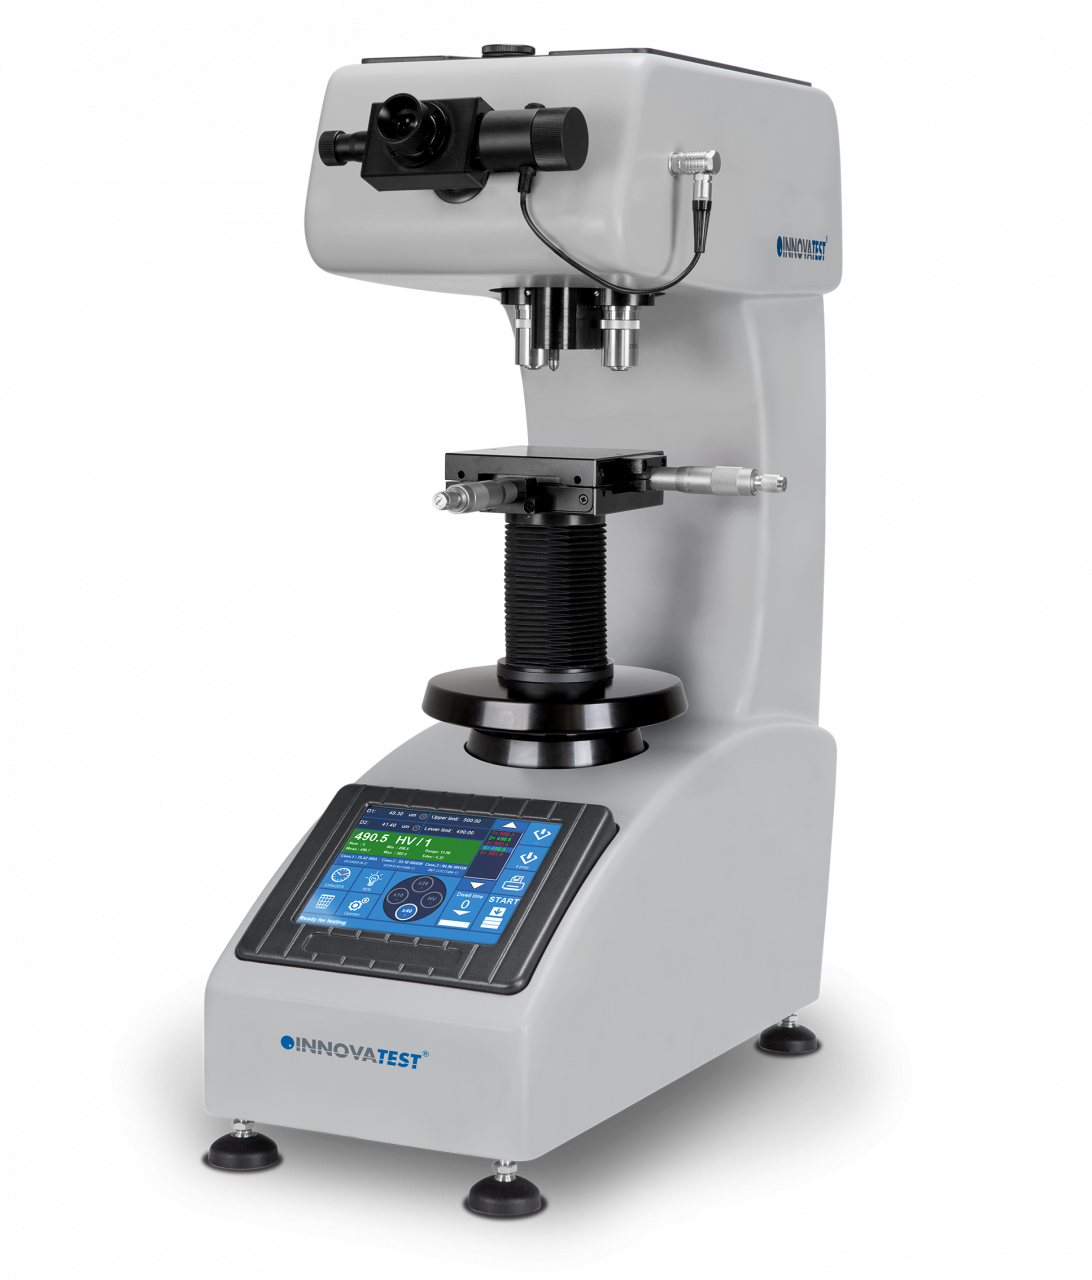 innovatest-nova-330-45-vickers-hardness-tester